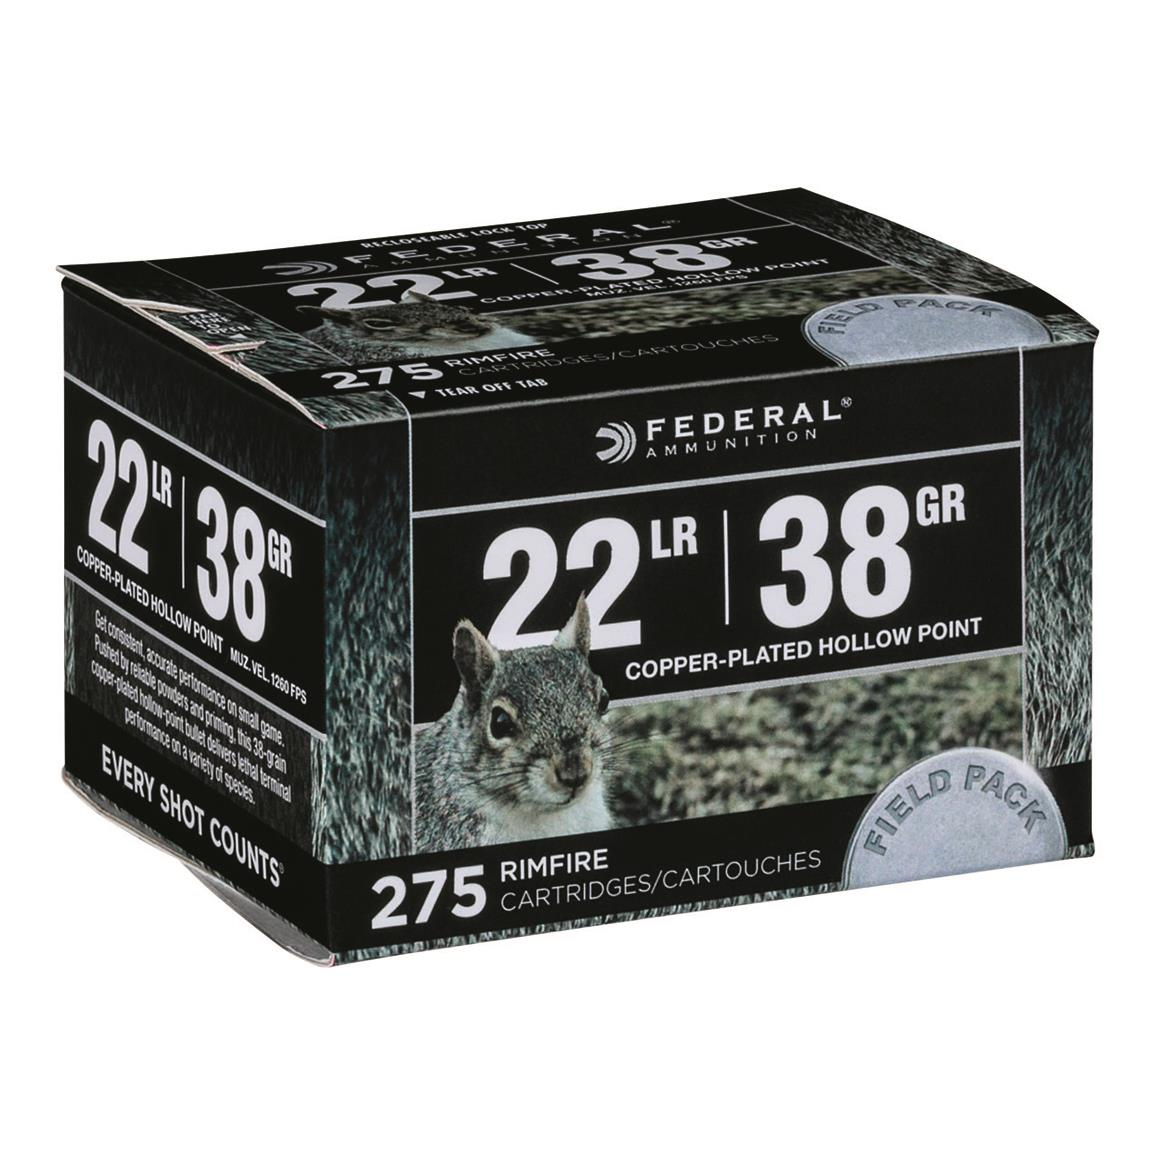 Federal Field Pack, .22LR, CPHP, 38 Grain, 275 Rounds